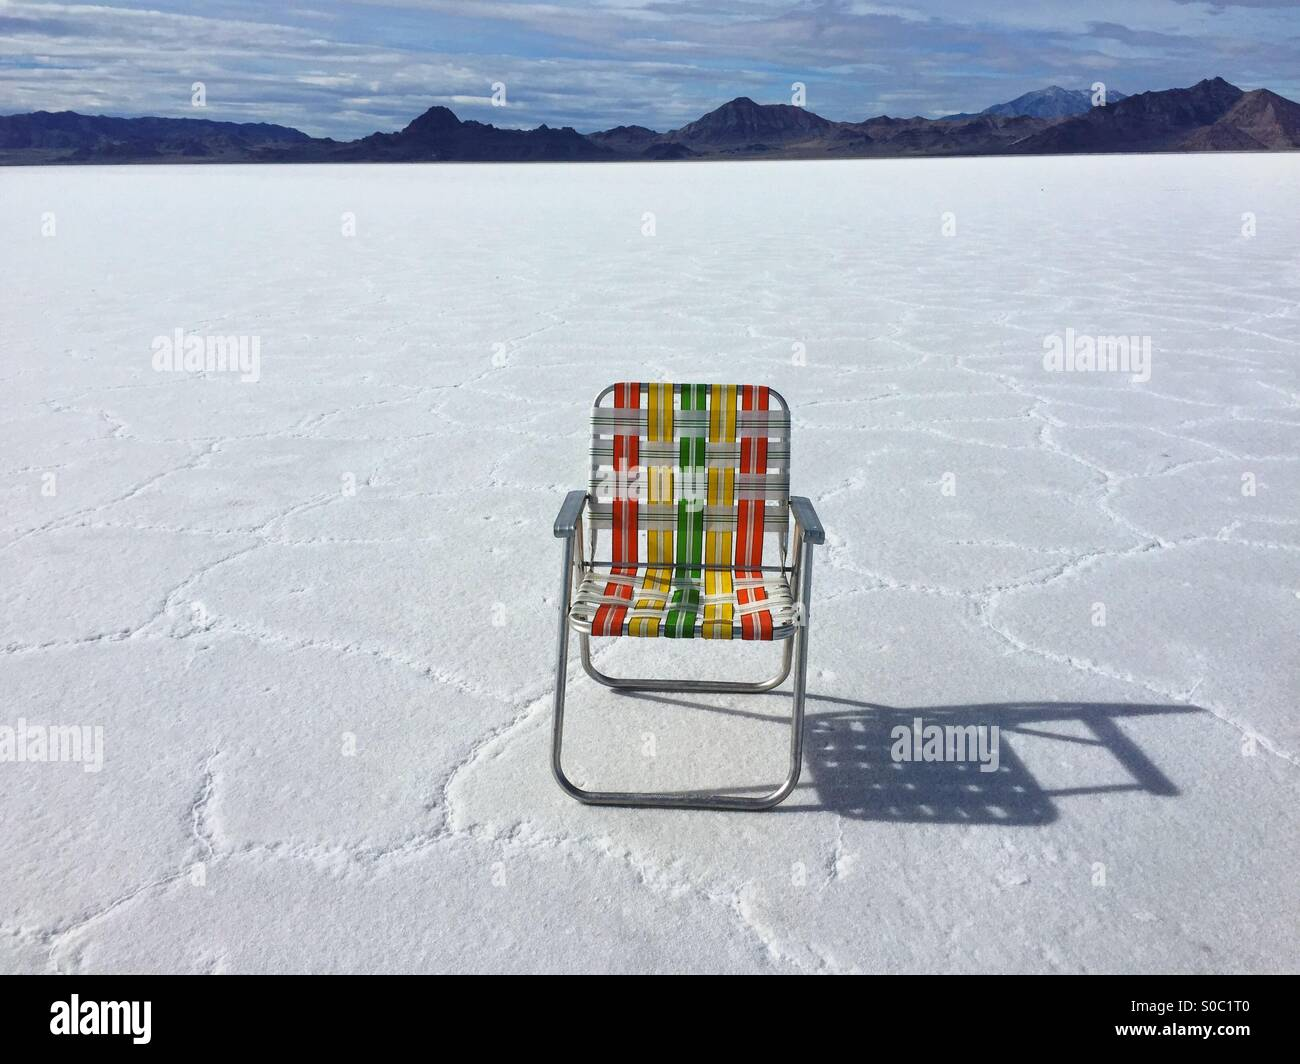 Vintage 1970s folding lawn chair sits at in the stark white Bonneville salt Flats, Utah. - Stock Image